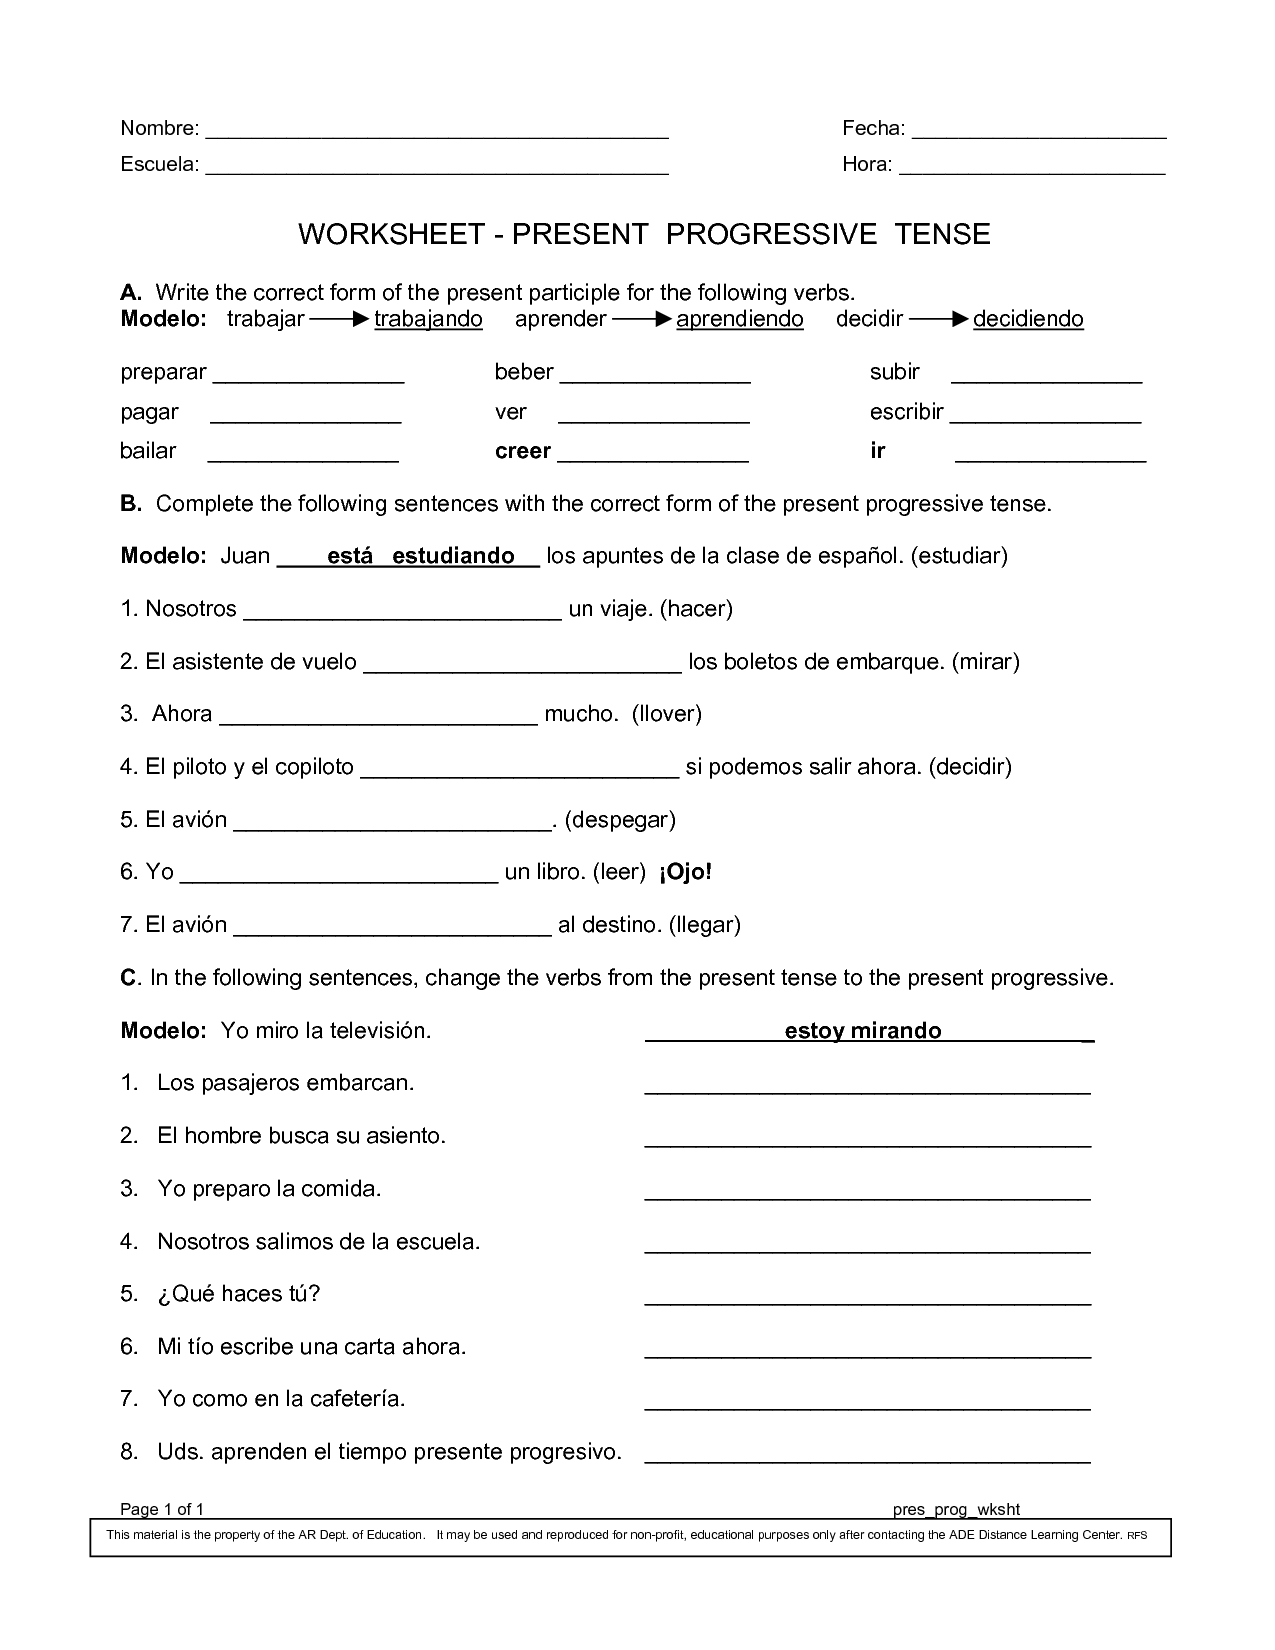 17 Best Images Of High School Health Class Worksheets